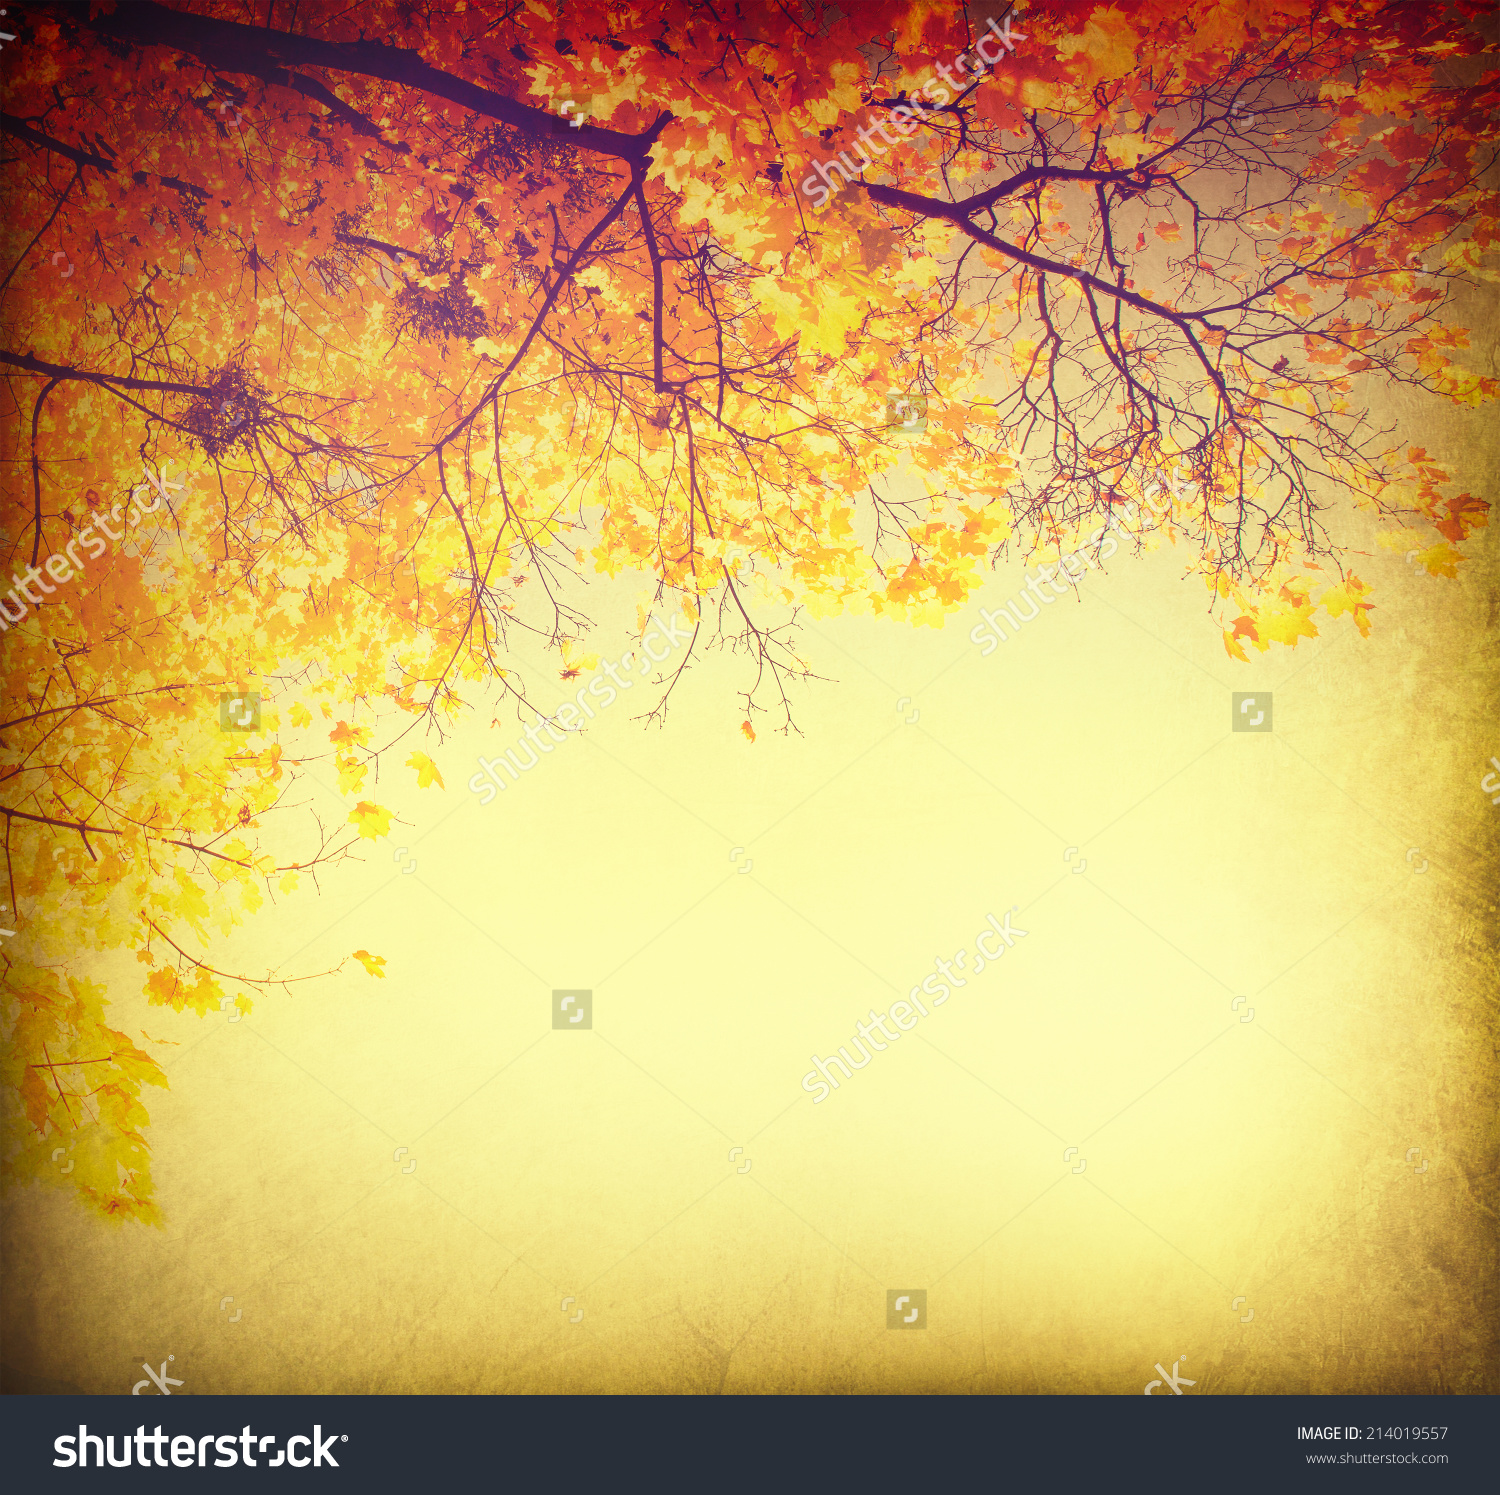 Autumn Background Fall Abstract Vintage Autumnal Stock Photo